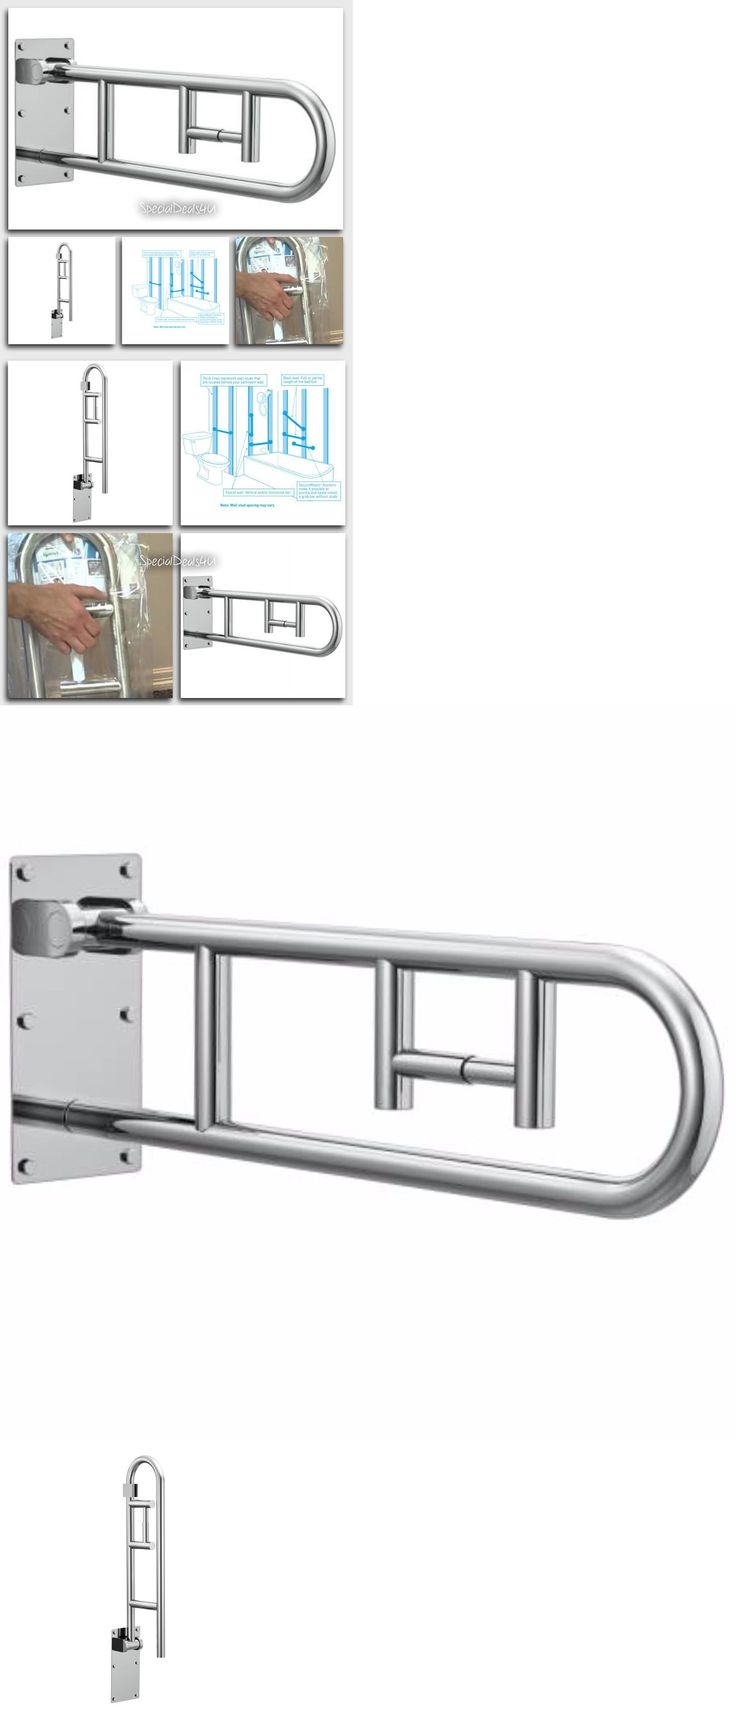 Combination Toilet Paper Holder And Grab Bar For Small Bathroom: 25+ Best Bathroom Grab Rails Ideas On Pinterest